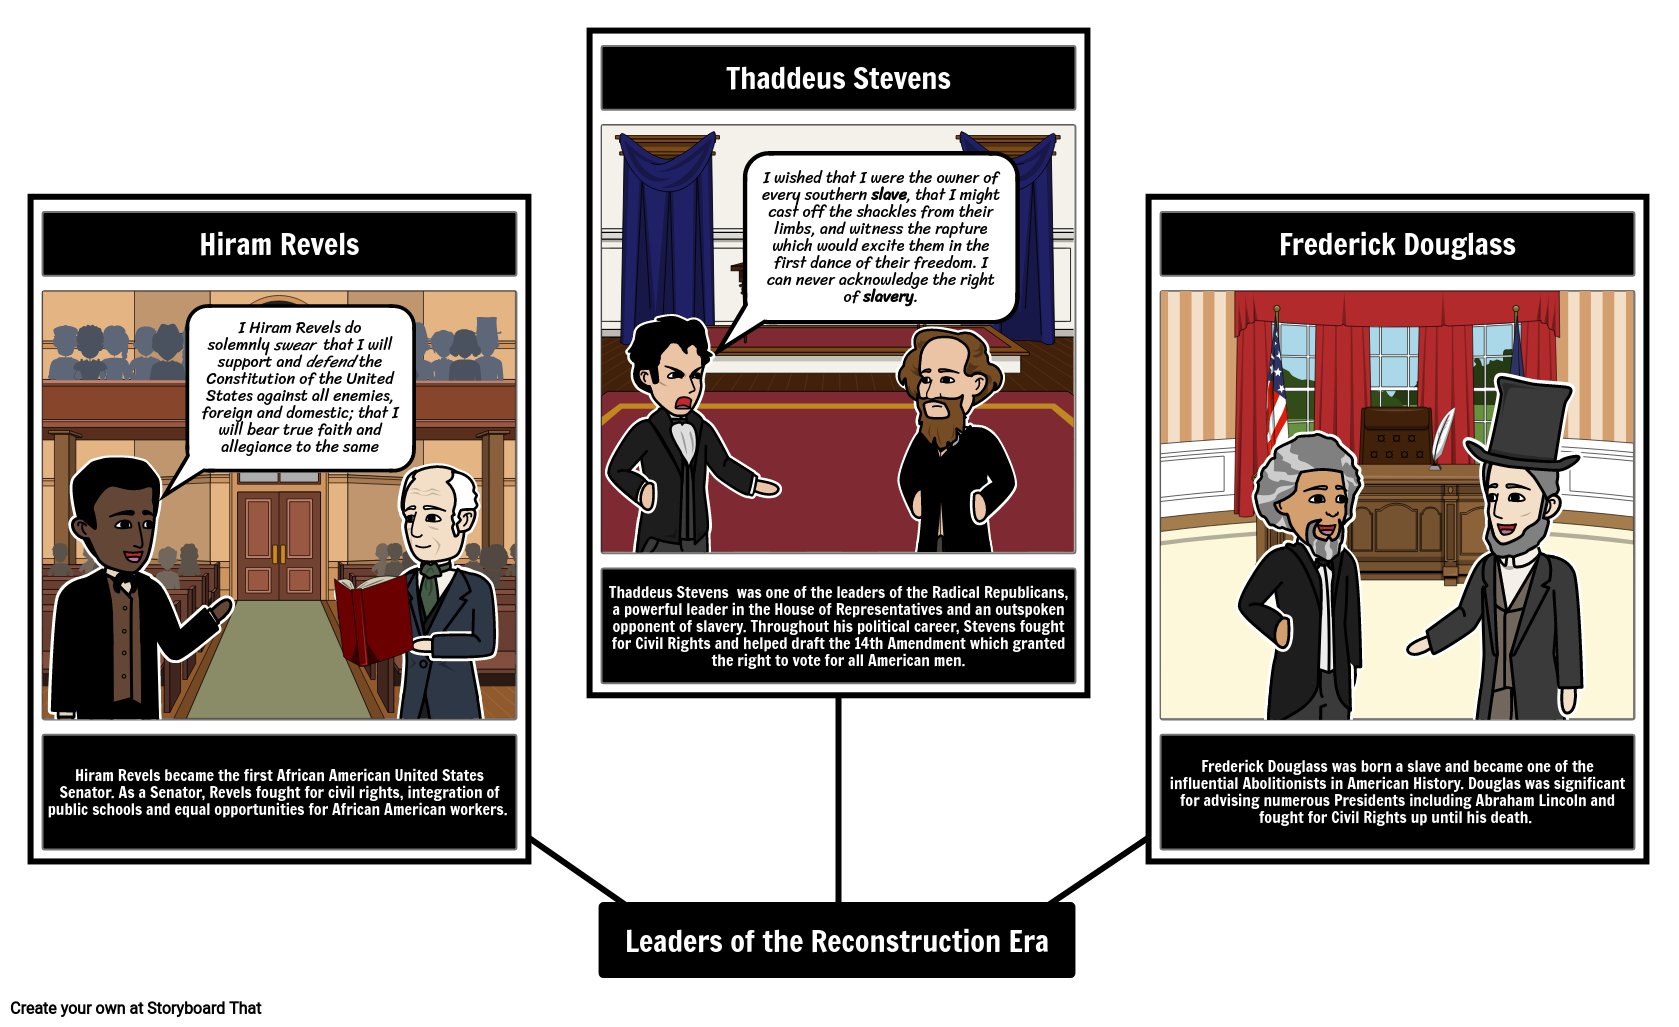 Leading Figures of the Reconstruction Era